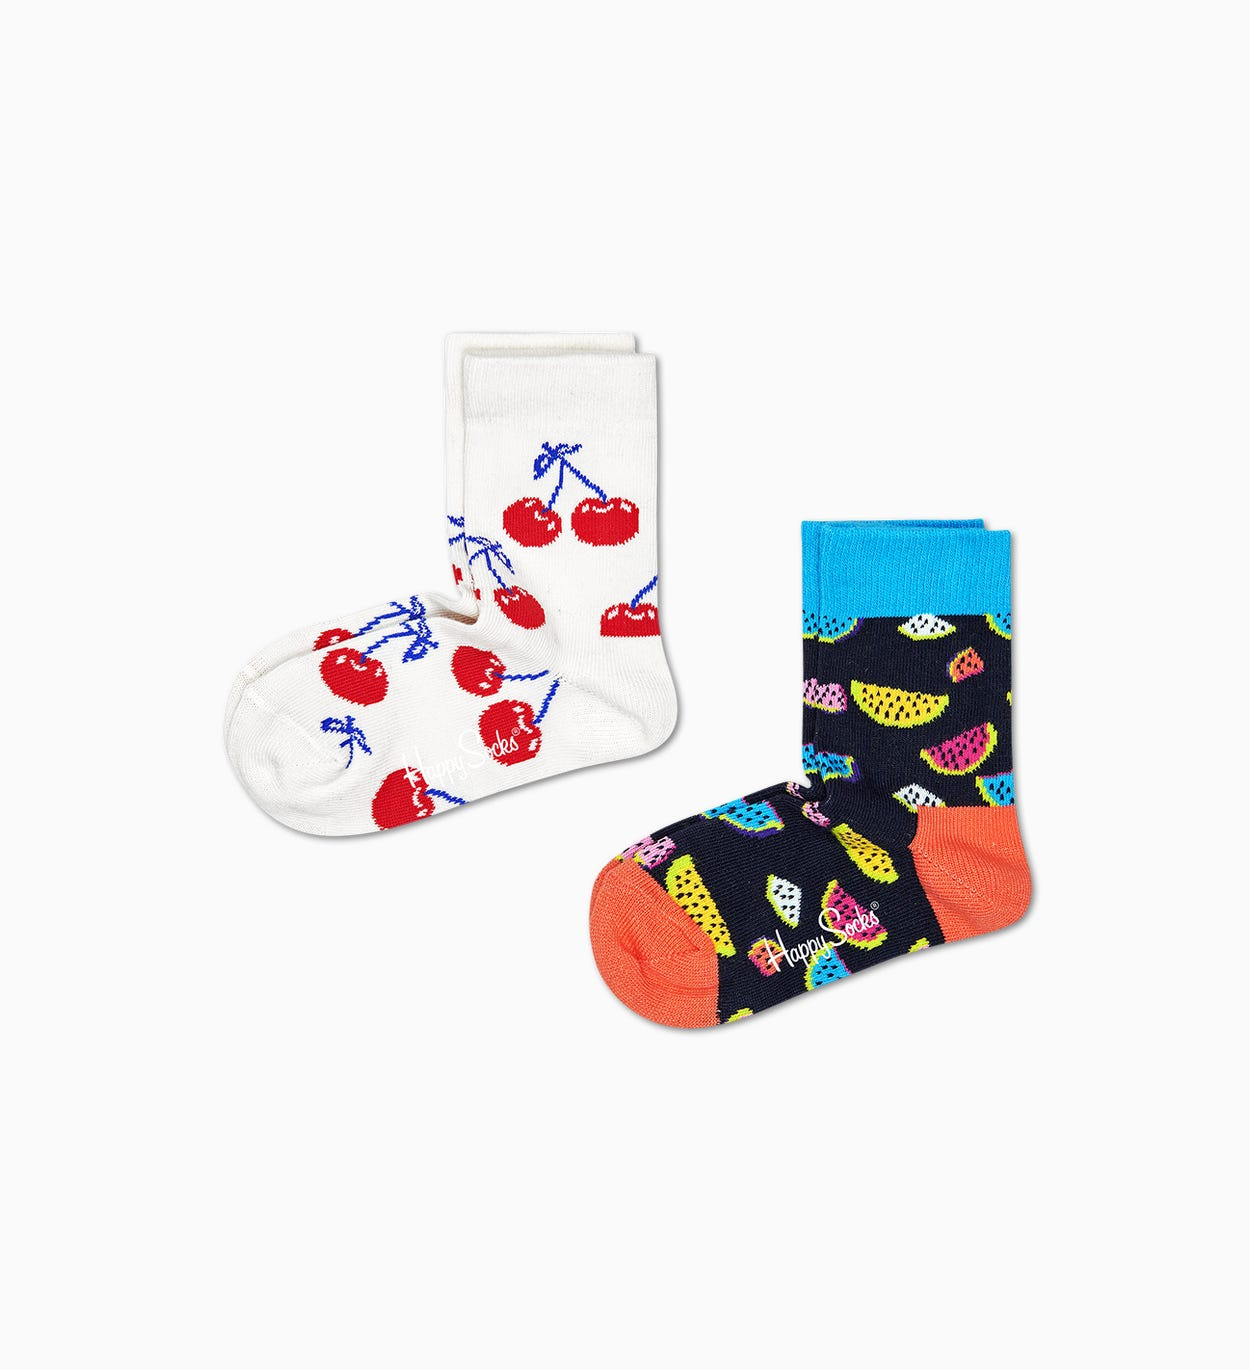 2-Pack Fruit Socks, Black - Kids| Happy Socks